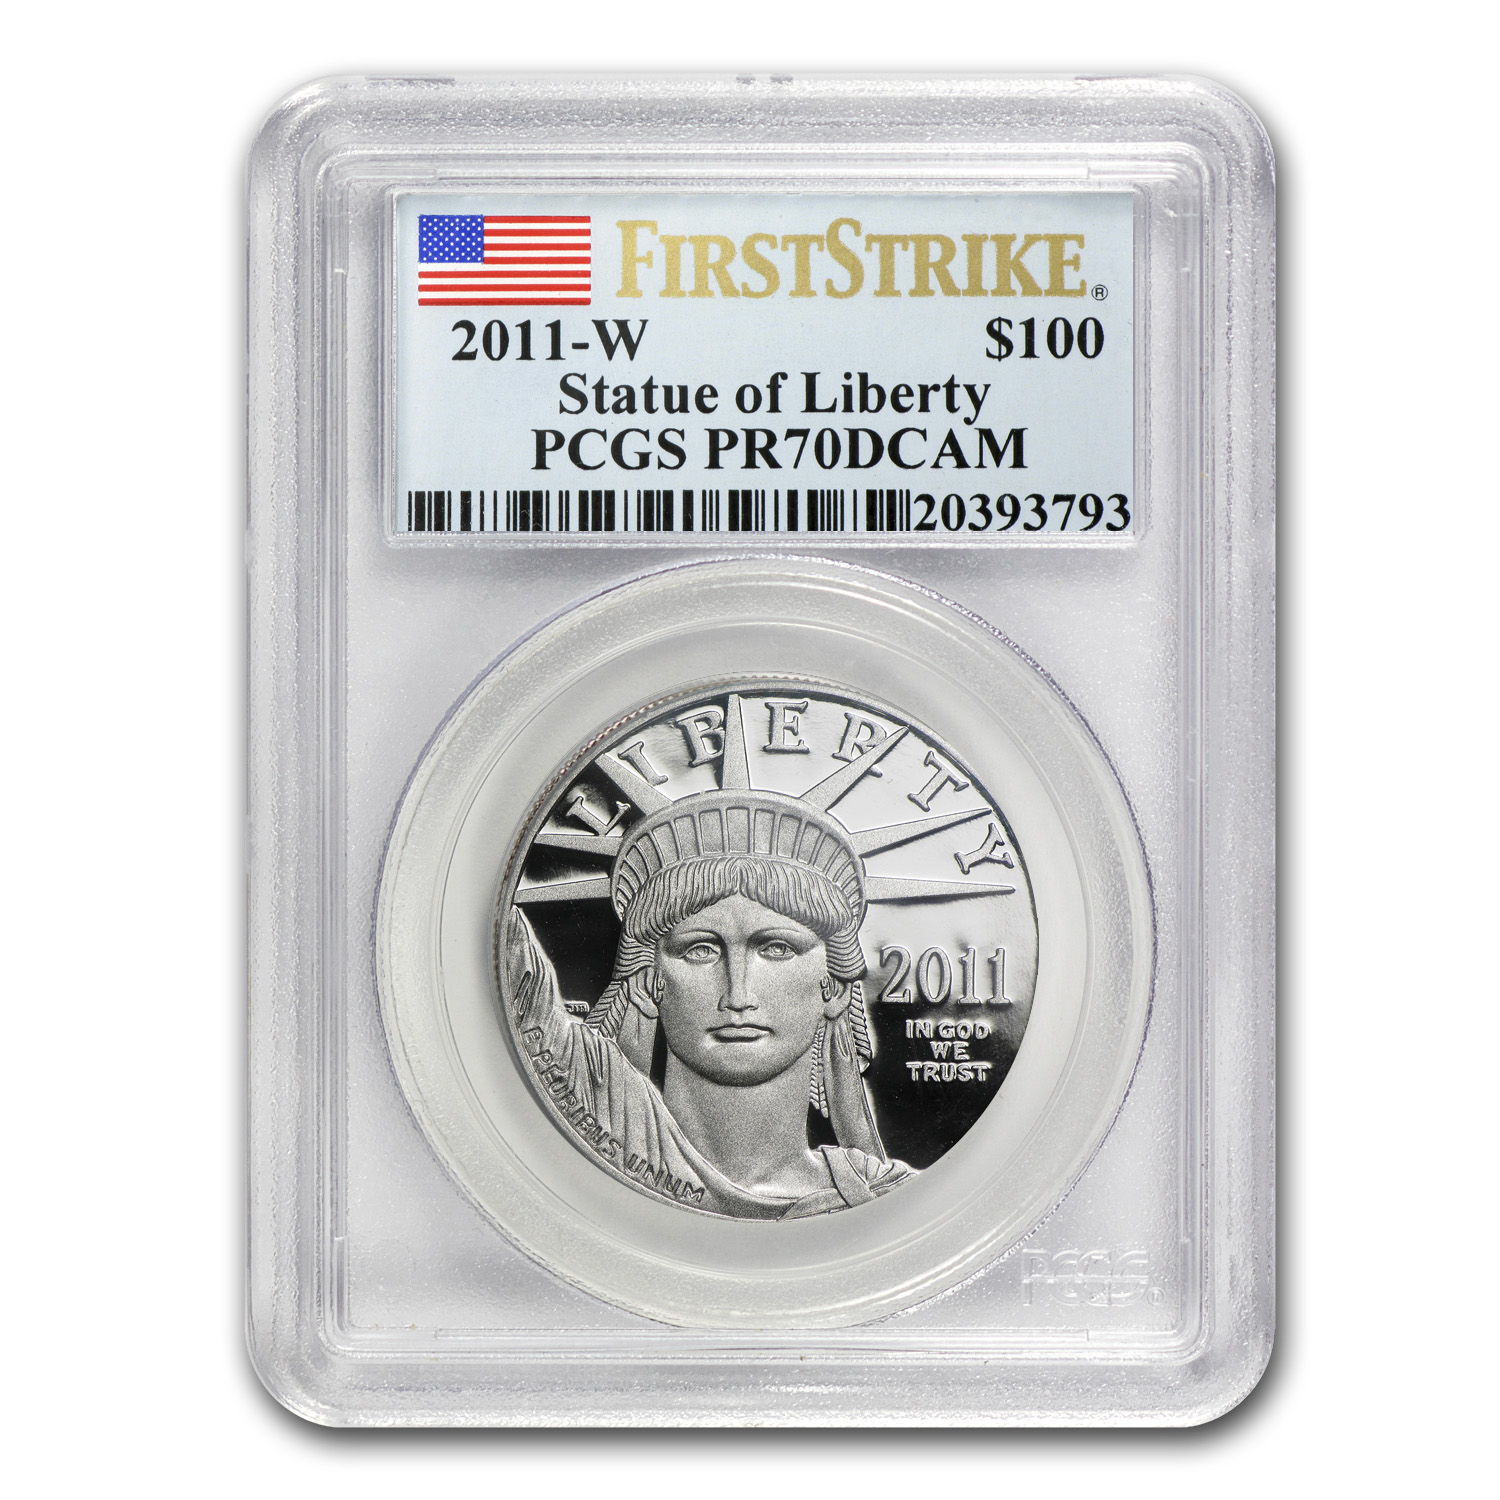 2011-W 1 oz Prf Platinum American Eagle PCGS PR-70 (First Strike)